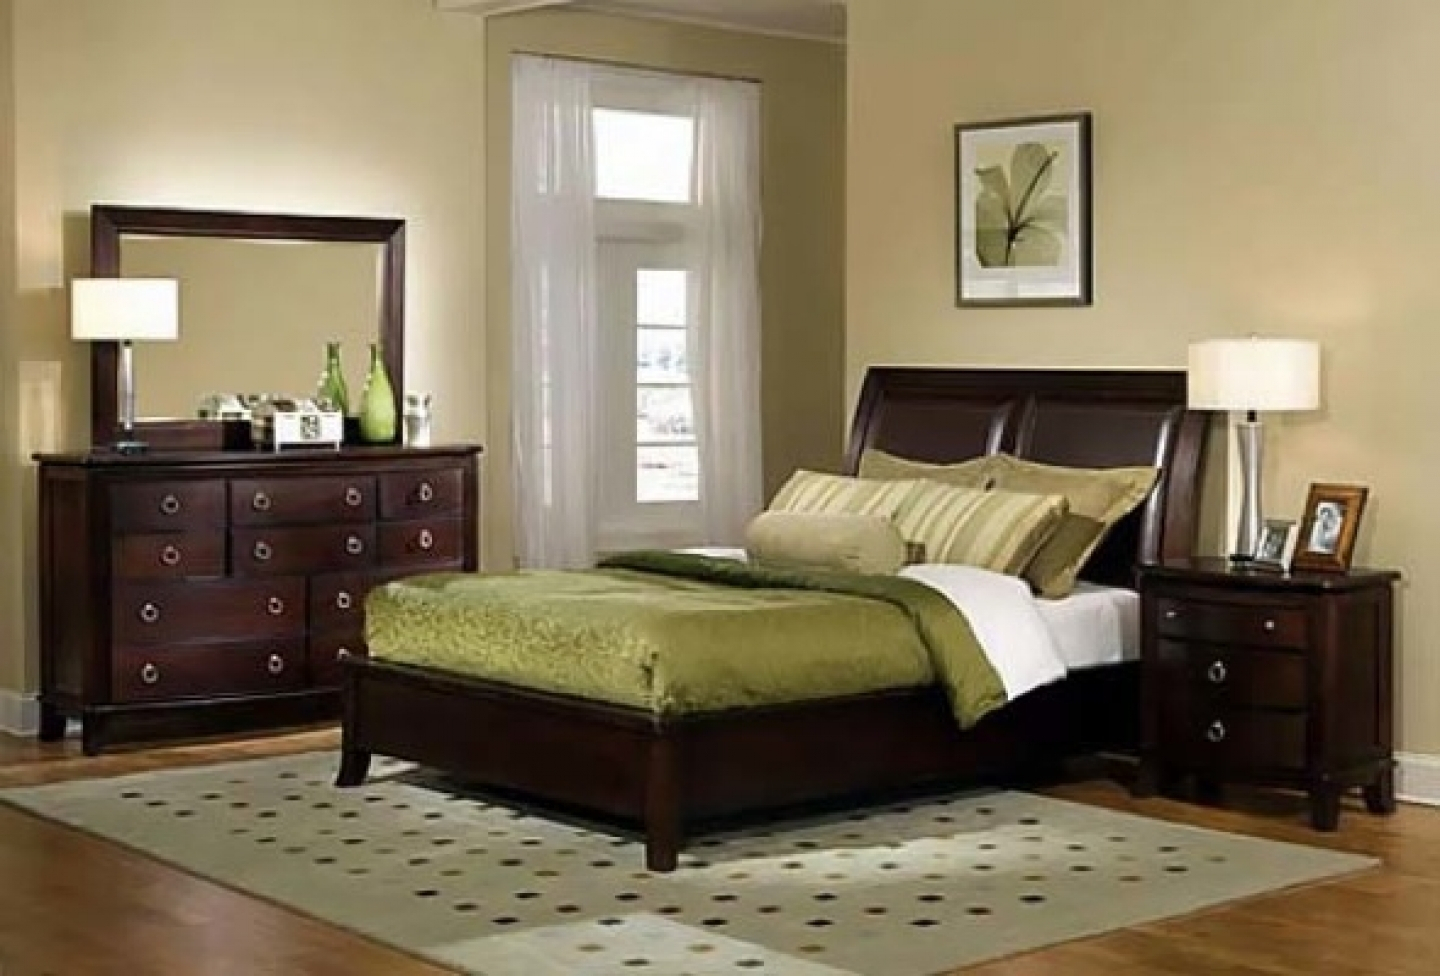 10 Unique Master Bedroom Wall Color Ideas wall paint ideas for bedrooms the latest home decor ideas